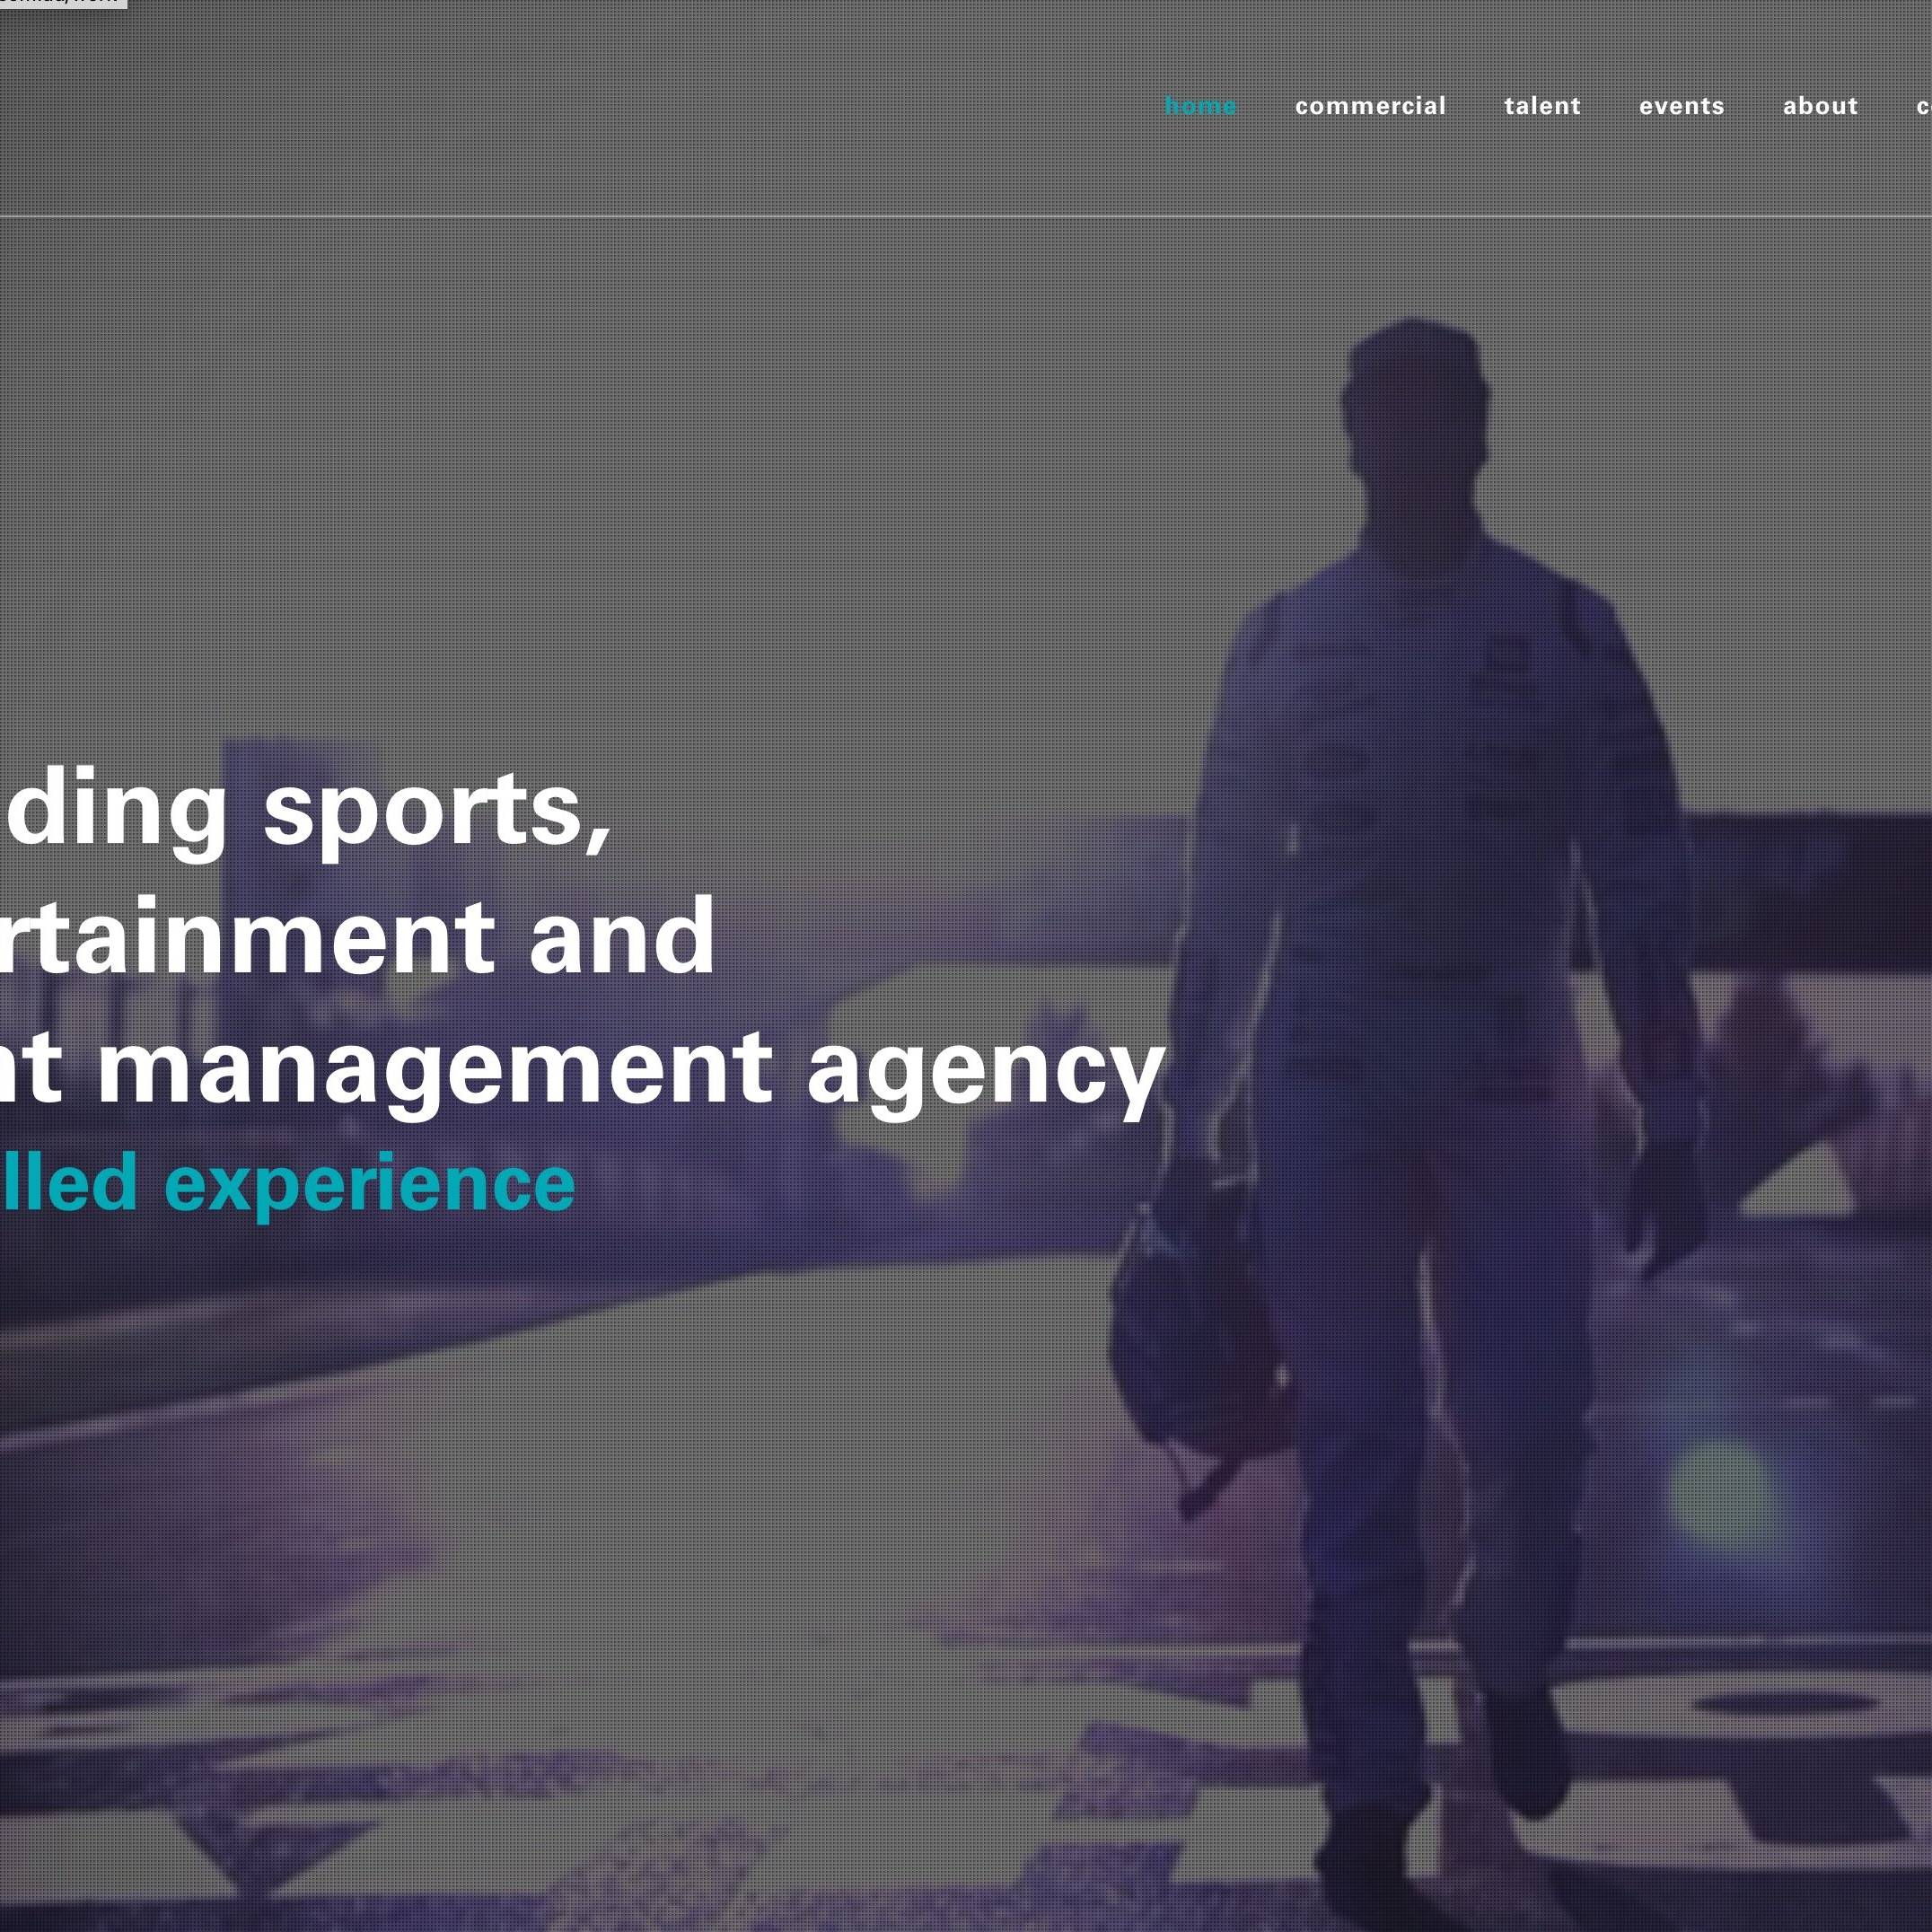 SEL Site By The Creative Solutionist